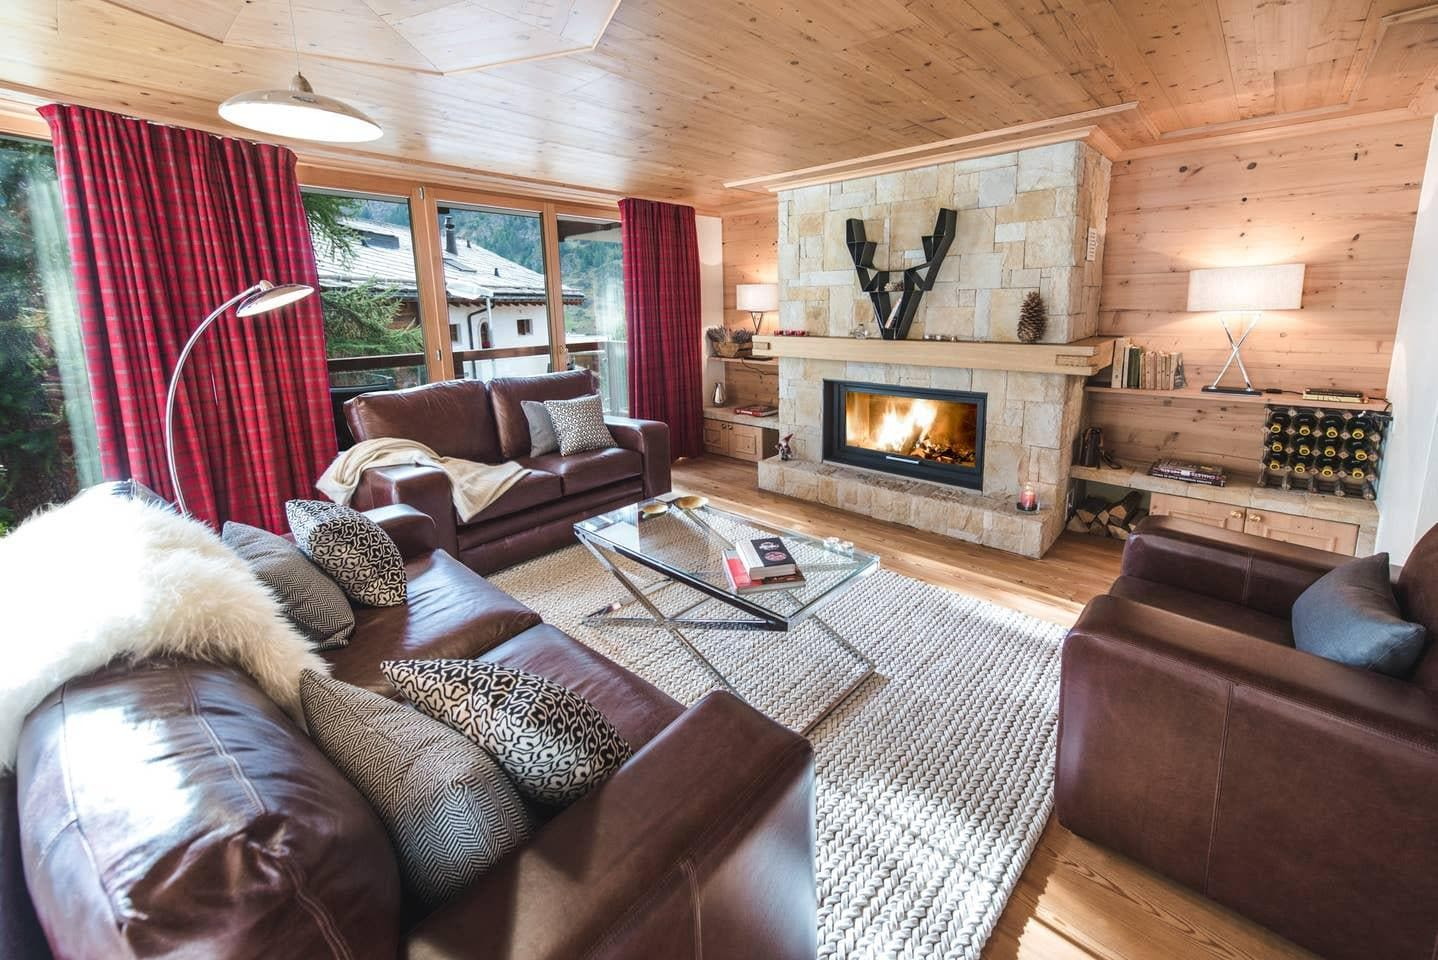 Property Image 2 - IMPRESSIVE DELUXE CHALET